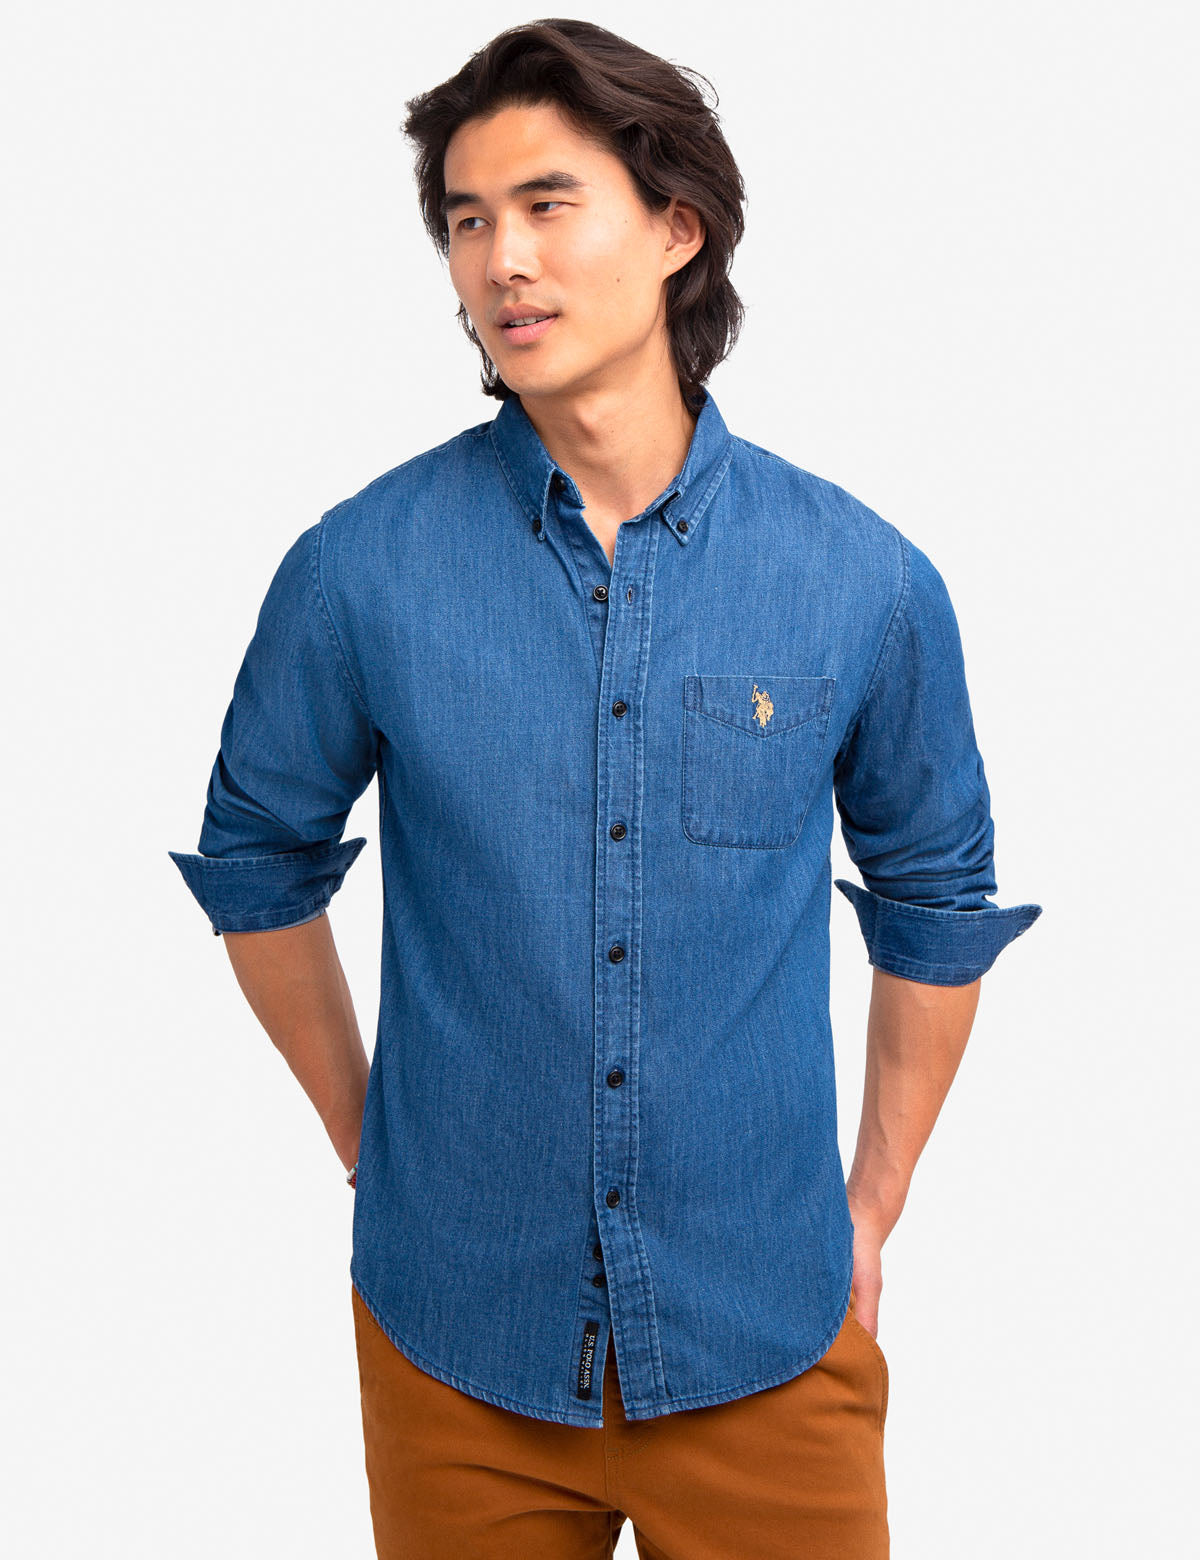 BLACK MALLET SLIM FIT DENIM SHIRT - U.S. Polo Assn.